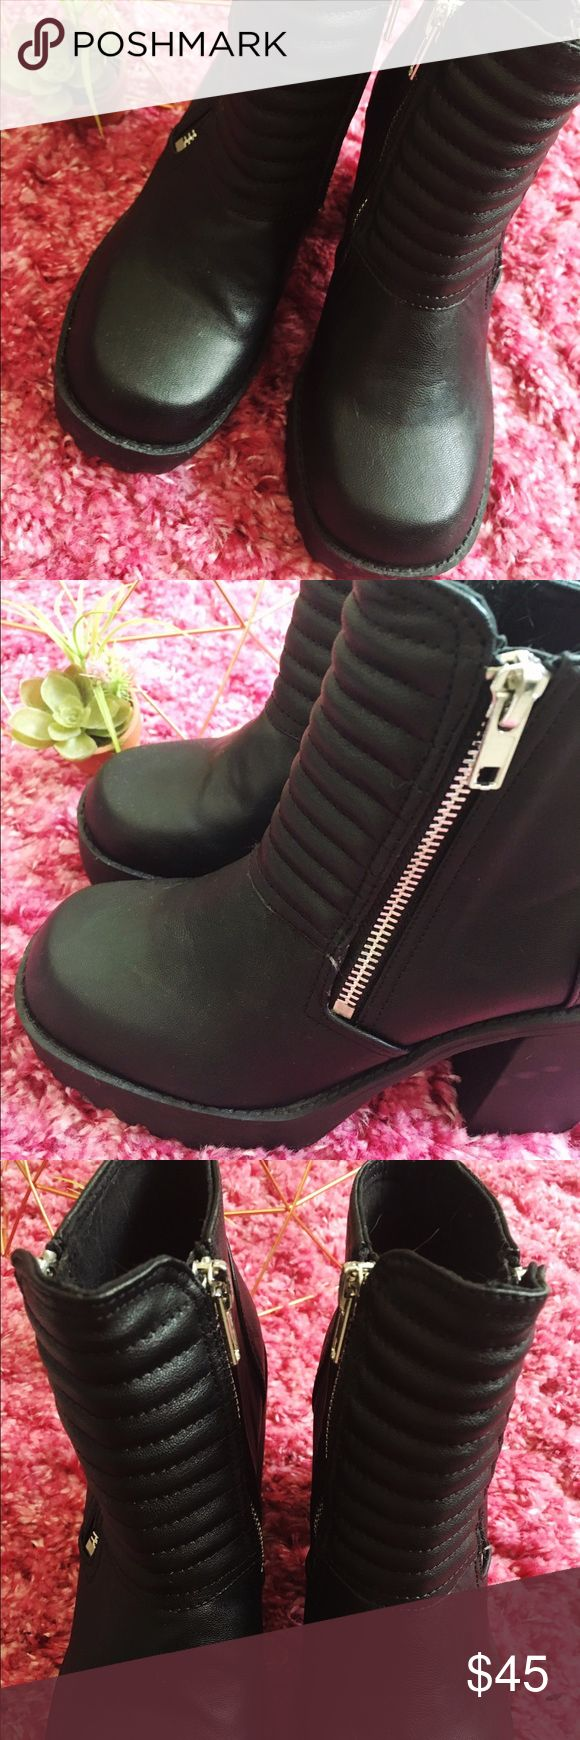 Divided by H & M black leather, chunky heel boot. Black, thick leather, chunky heel, functional zipper, ankle boot. Only worn once. Lou Teasdale pictured wearing in photo. Divided Shoes Ankle Boots & Booties